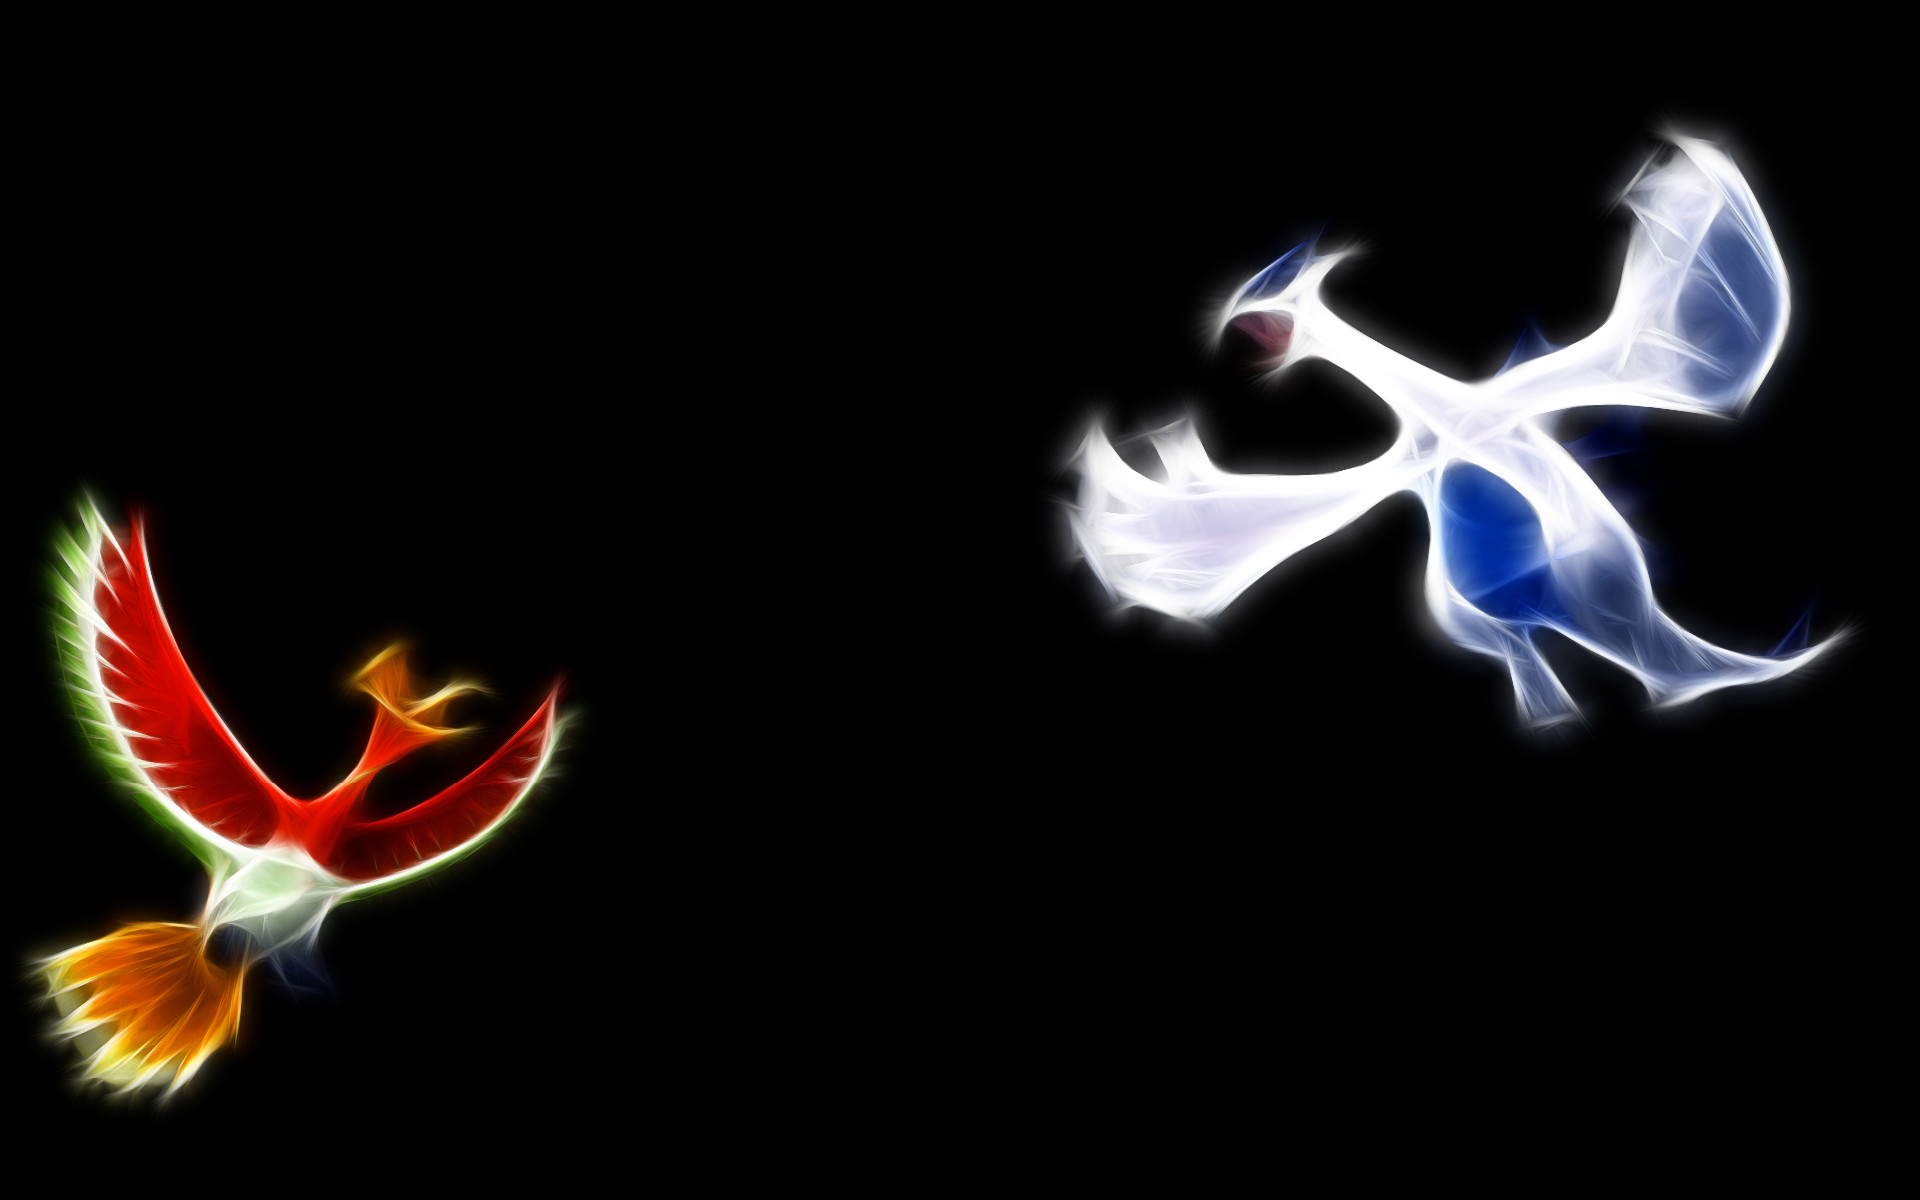 1920x1200 Ho Oh And Lugia wallpaper - 878317